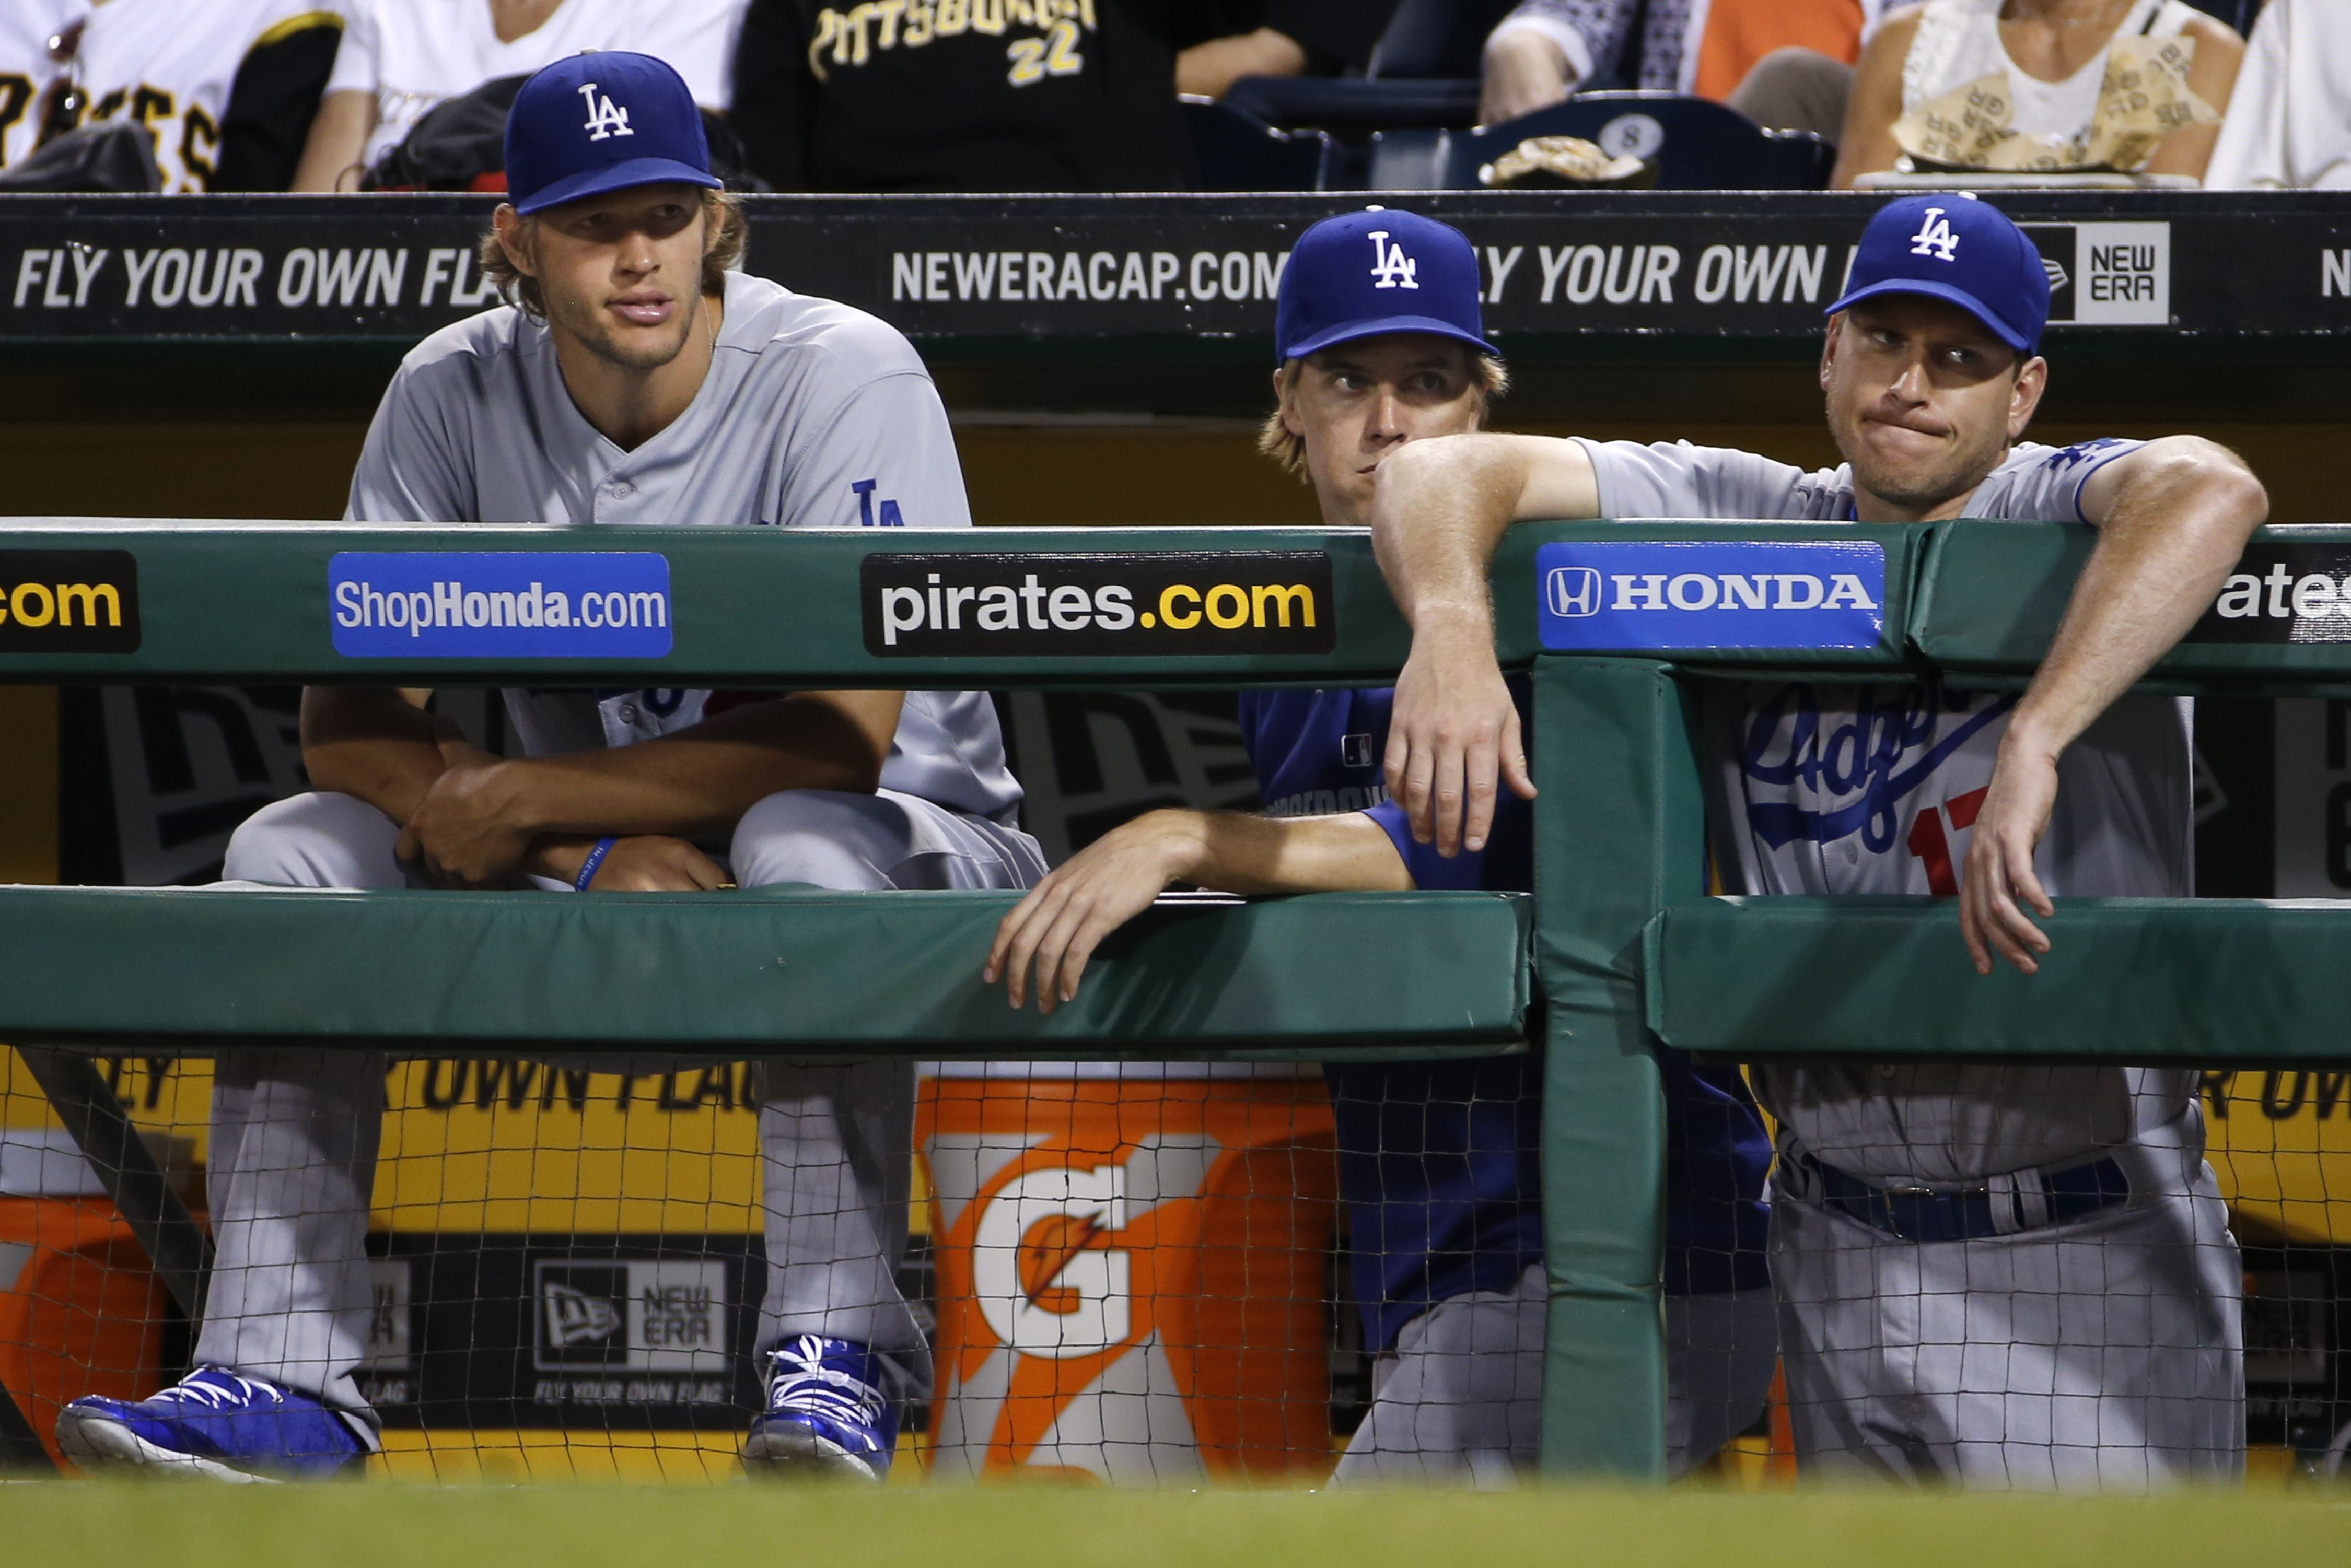 Los Angeles Dodgers starting pitchers Clayton Kershaw, left, and Zack Greinke, center, and catcher A.J. Ellis watch from the dugout during the ninth inning of a 6-1 loss to the Pittsburgh Pirates in a baseball game in Pittsburgh Wednesday, July 23, 2014. (AP Photo)